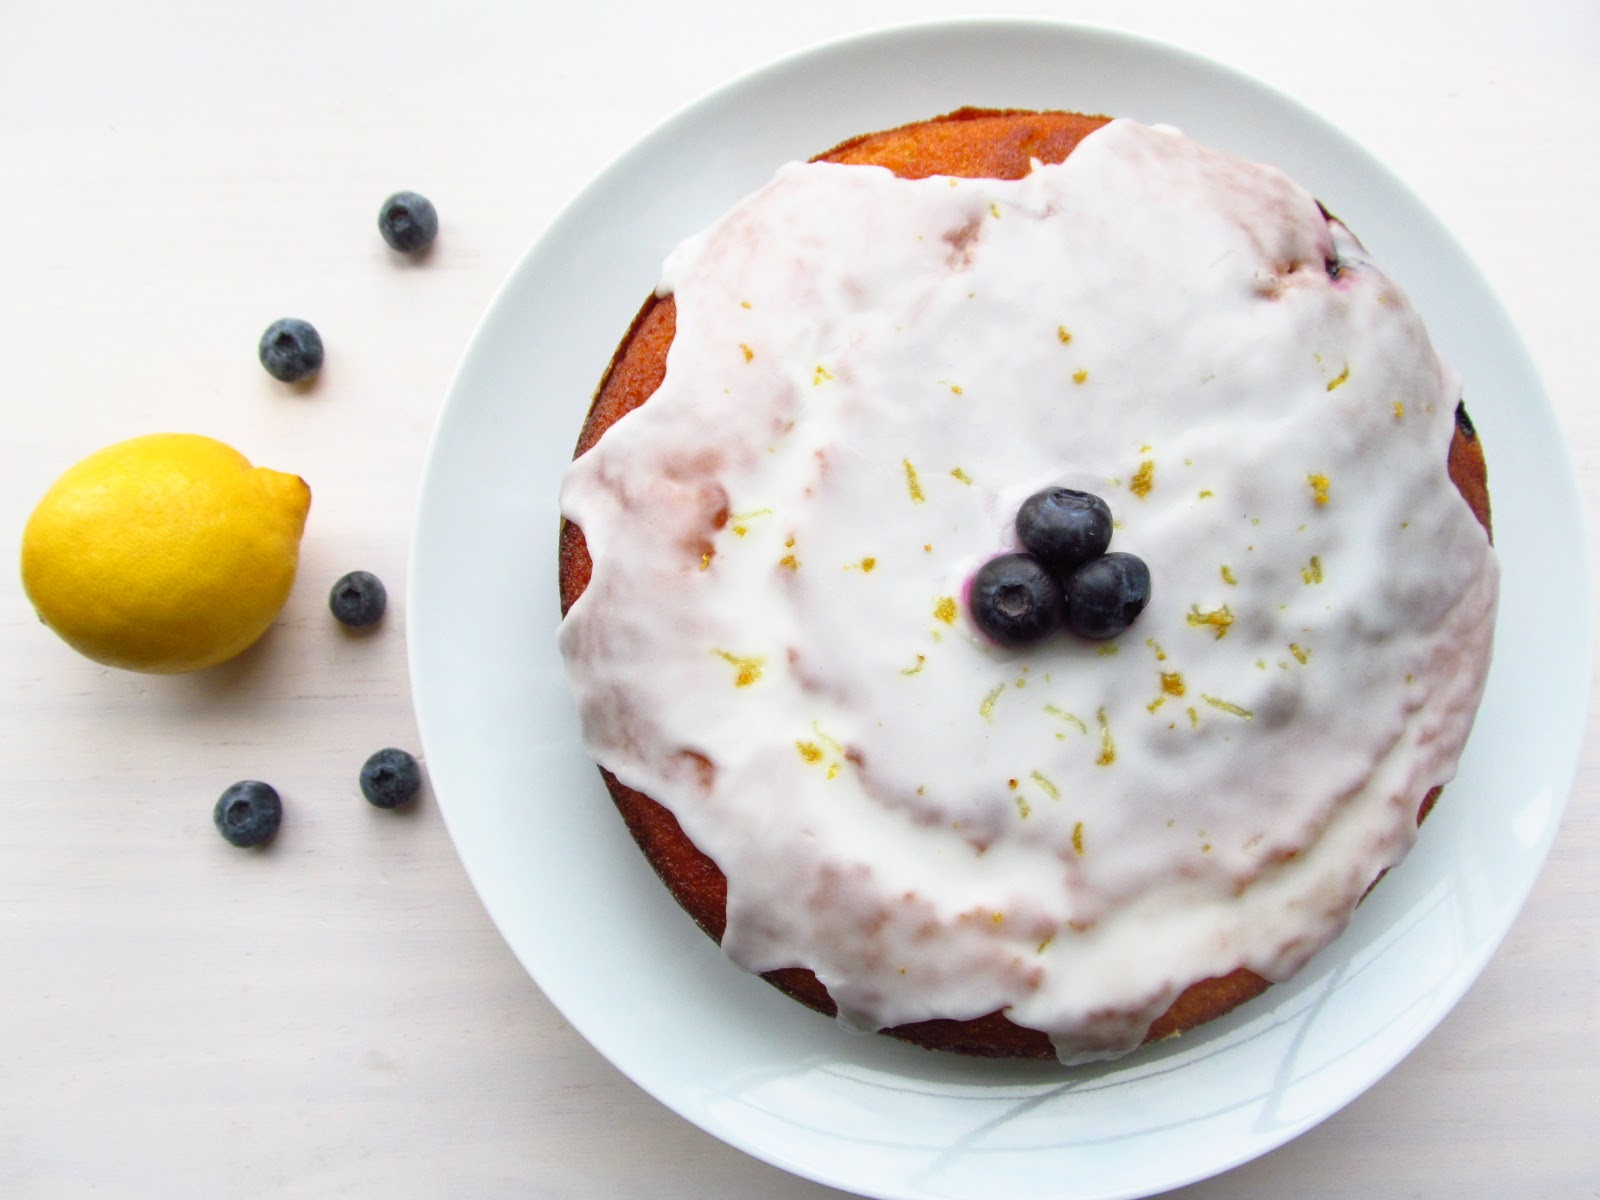 Good Food, Shared: Lemon-Blueberry Yogurt Cake